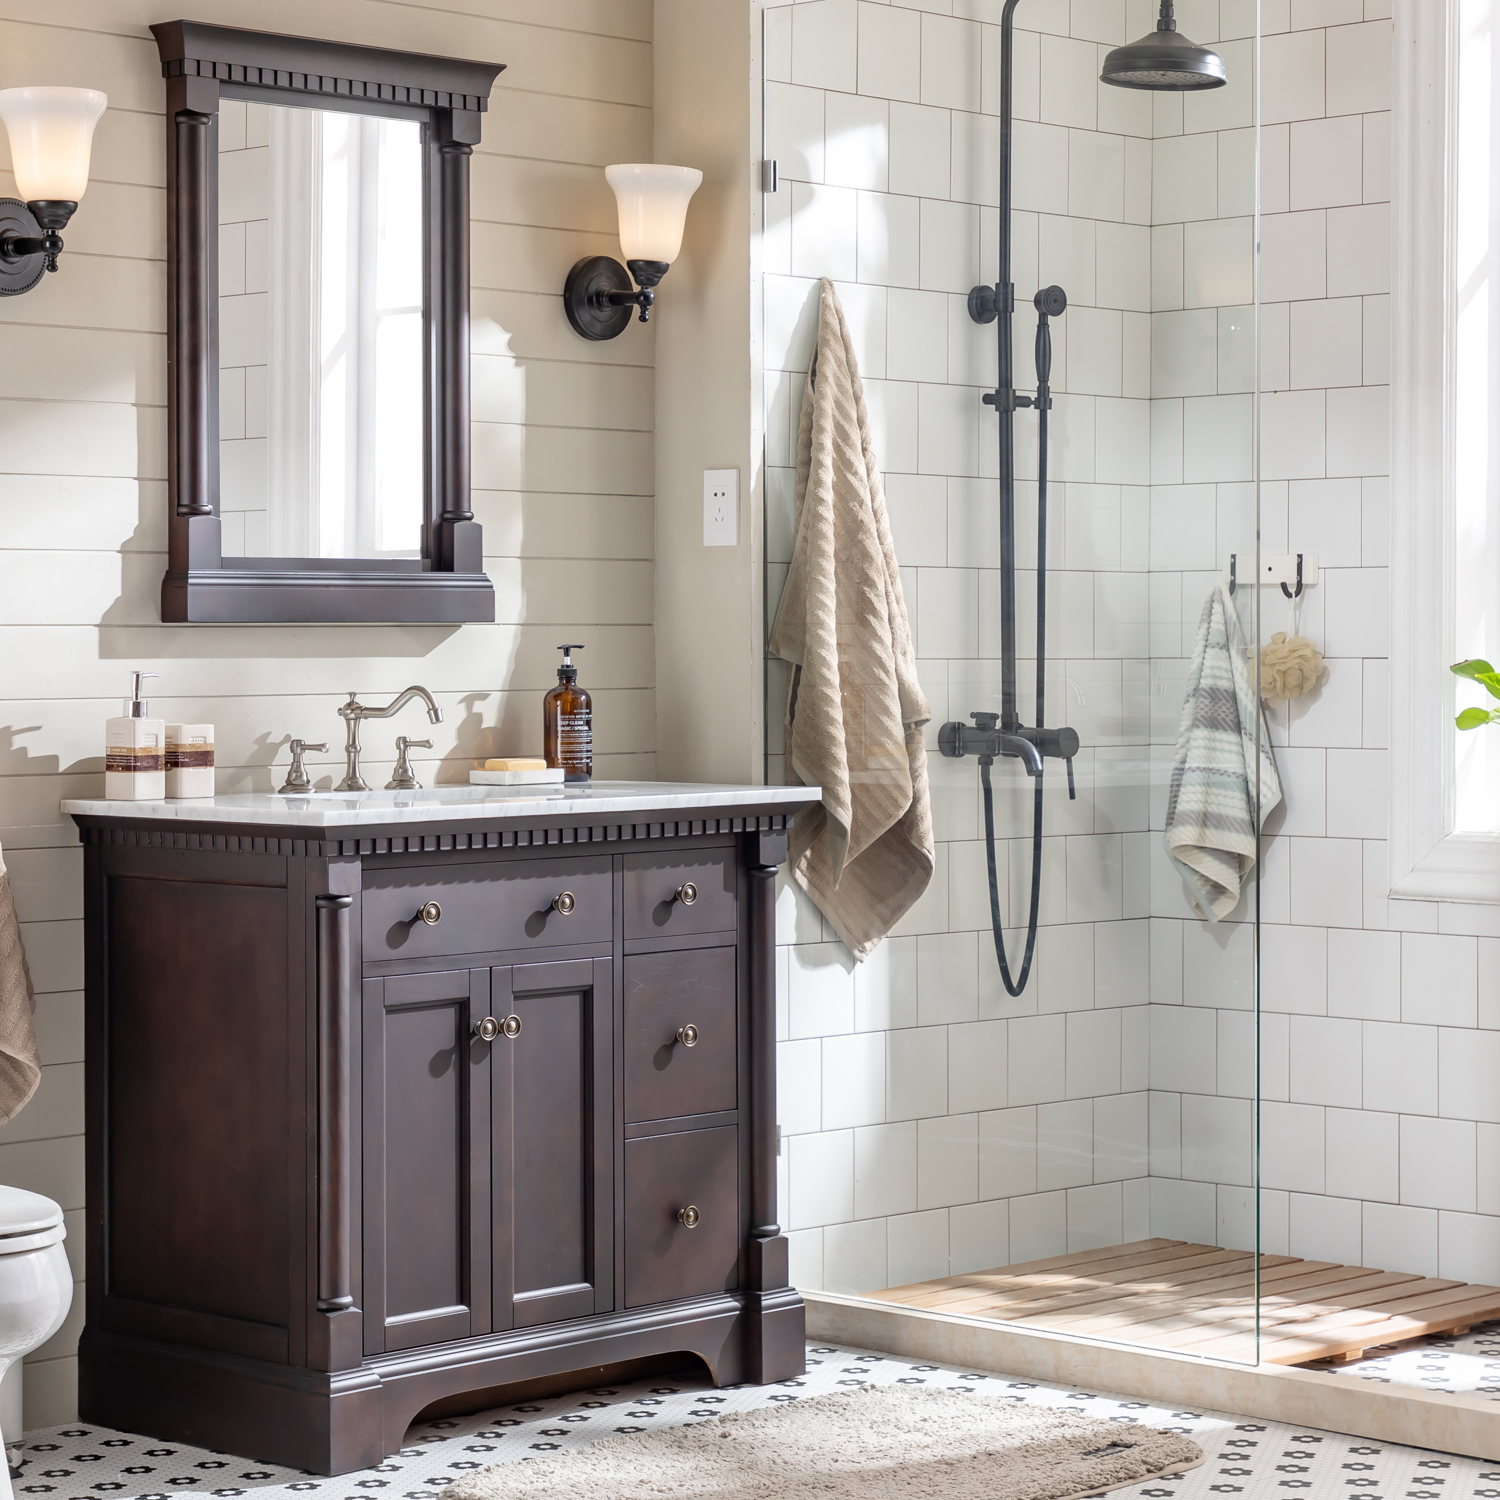 Eviva Preston 37 In Aged Chocolate Bathroom Vanity With White Carrara Marble Countertop And Undermount Sink